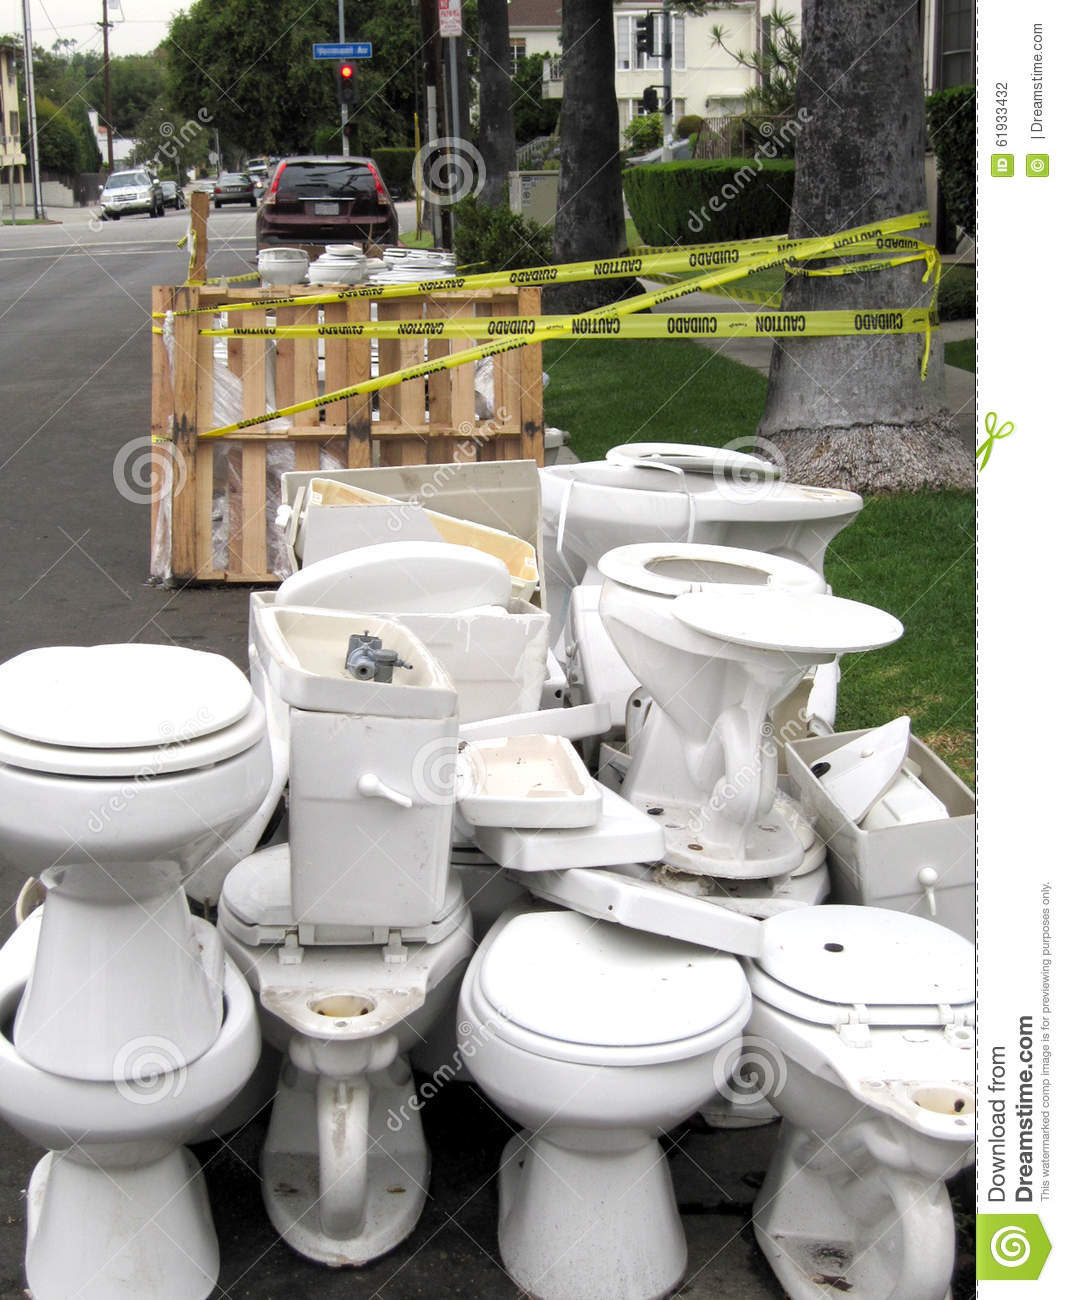 Pile of discarded toilets stock photo. Image of funny - 61933432